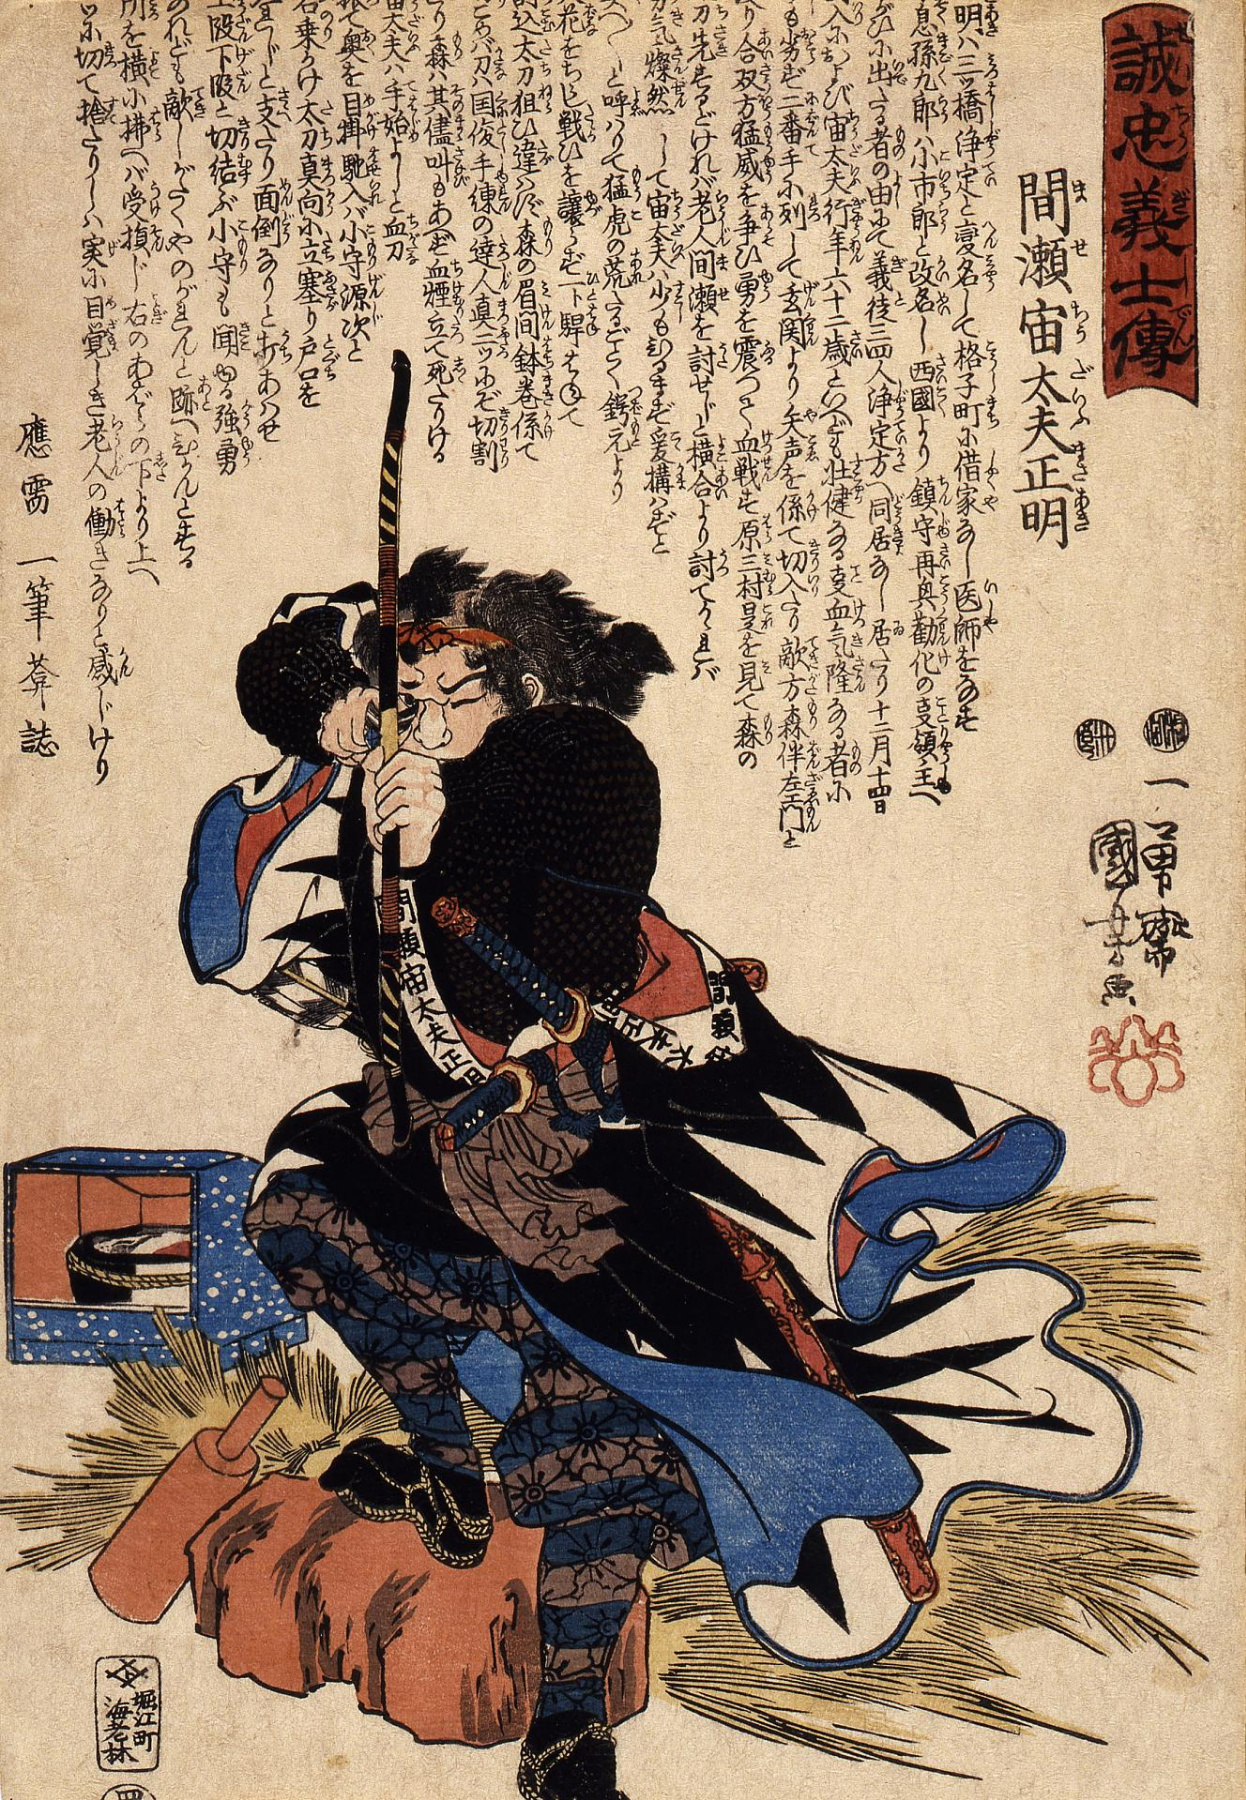 Utagawa Kuniyoshi. 47 loyal samurai. Today Mase, Masaaki, aiming archery